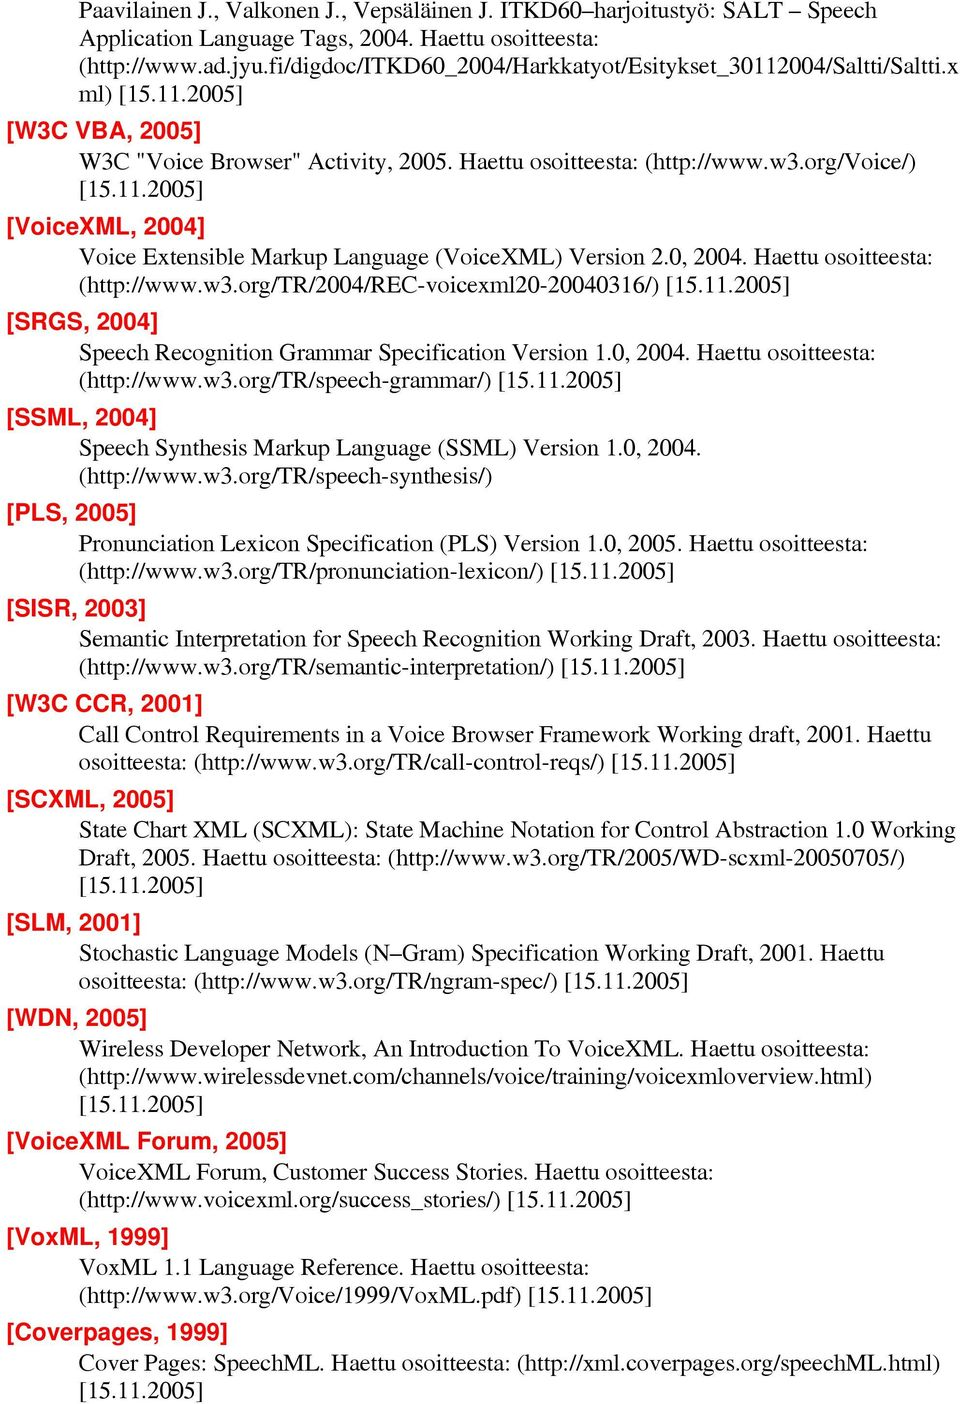 0, 2004. Haettu osoitteesta: (http://www.w3.org/tr/2004/rec-voicexml20-20040316/) [15.11.2005] [SRGS, 2004] Speech Recognition Grammar Specification Version 1.0, 2004. Haettu osoitteesta: (http://www.w3.org/tr/speech-grammar/) [15.